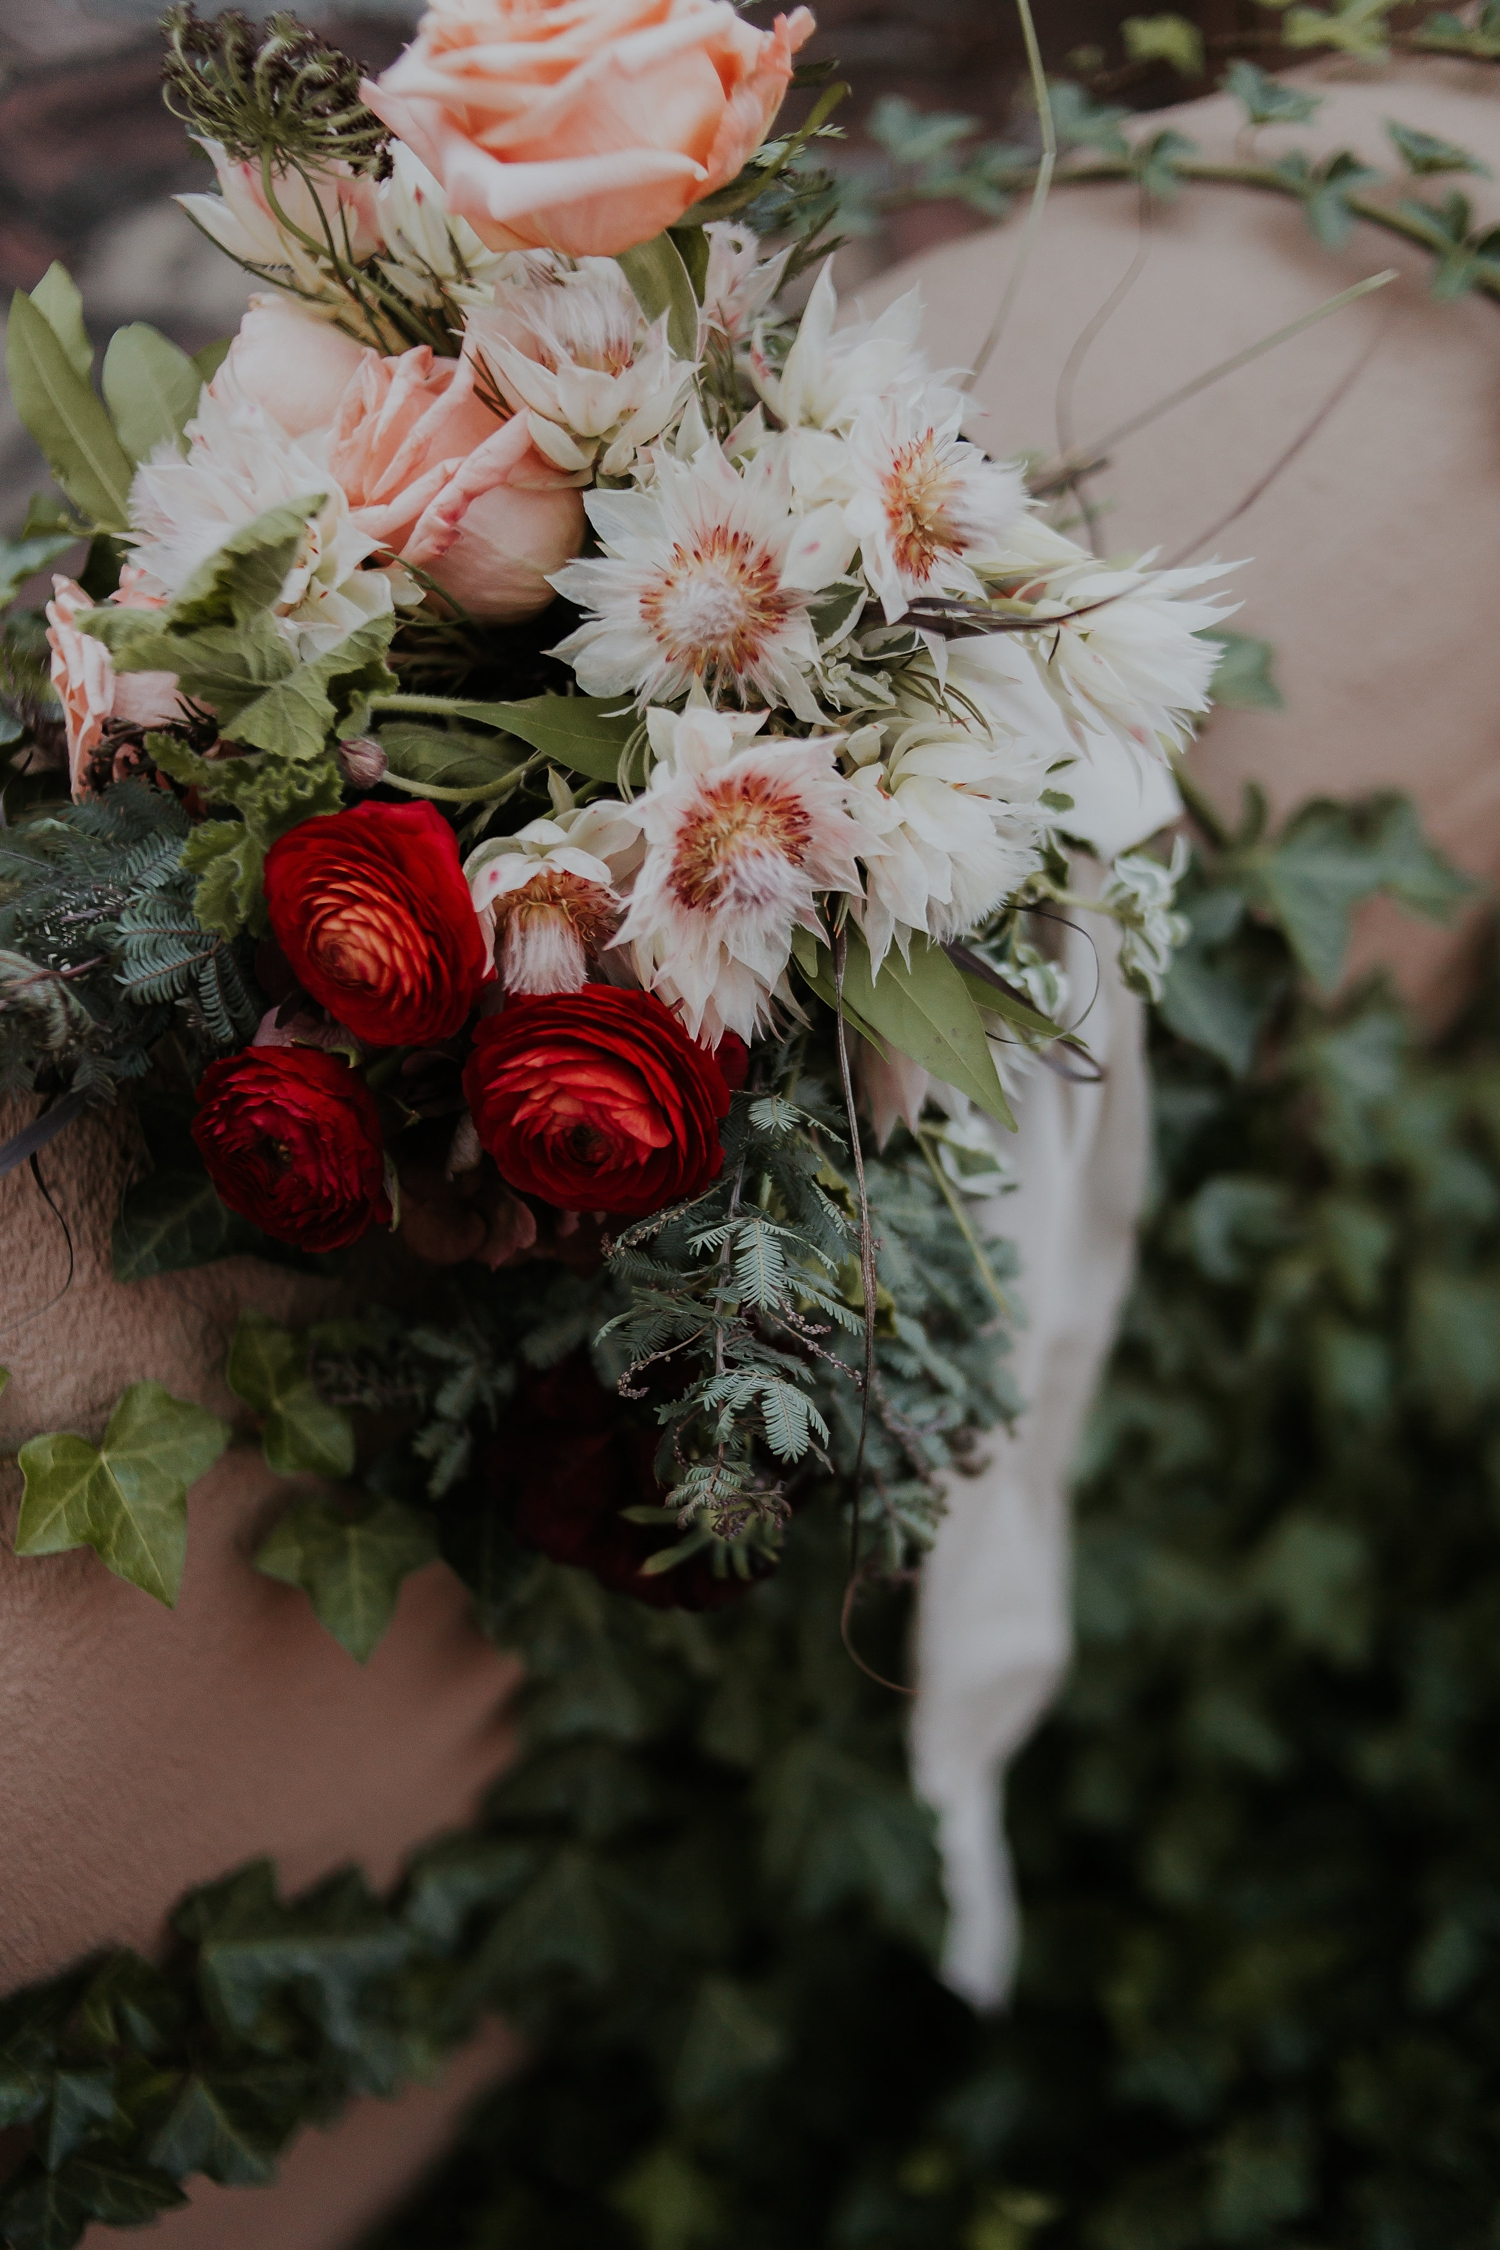 Alicia+lucia+photography+-+albuquerque+wedding+photographer+-+santa+fe+wedding+photography+-+new+mexico+wedding+photographer+-+la+ posada+santa+fe+wedding_0077.jpg